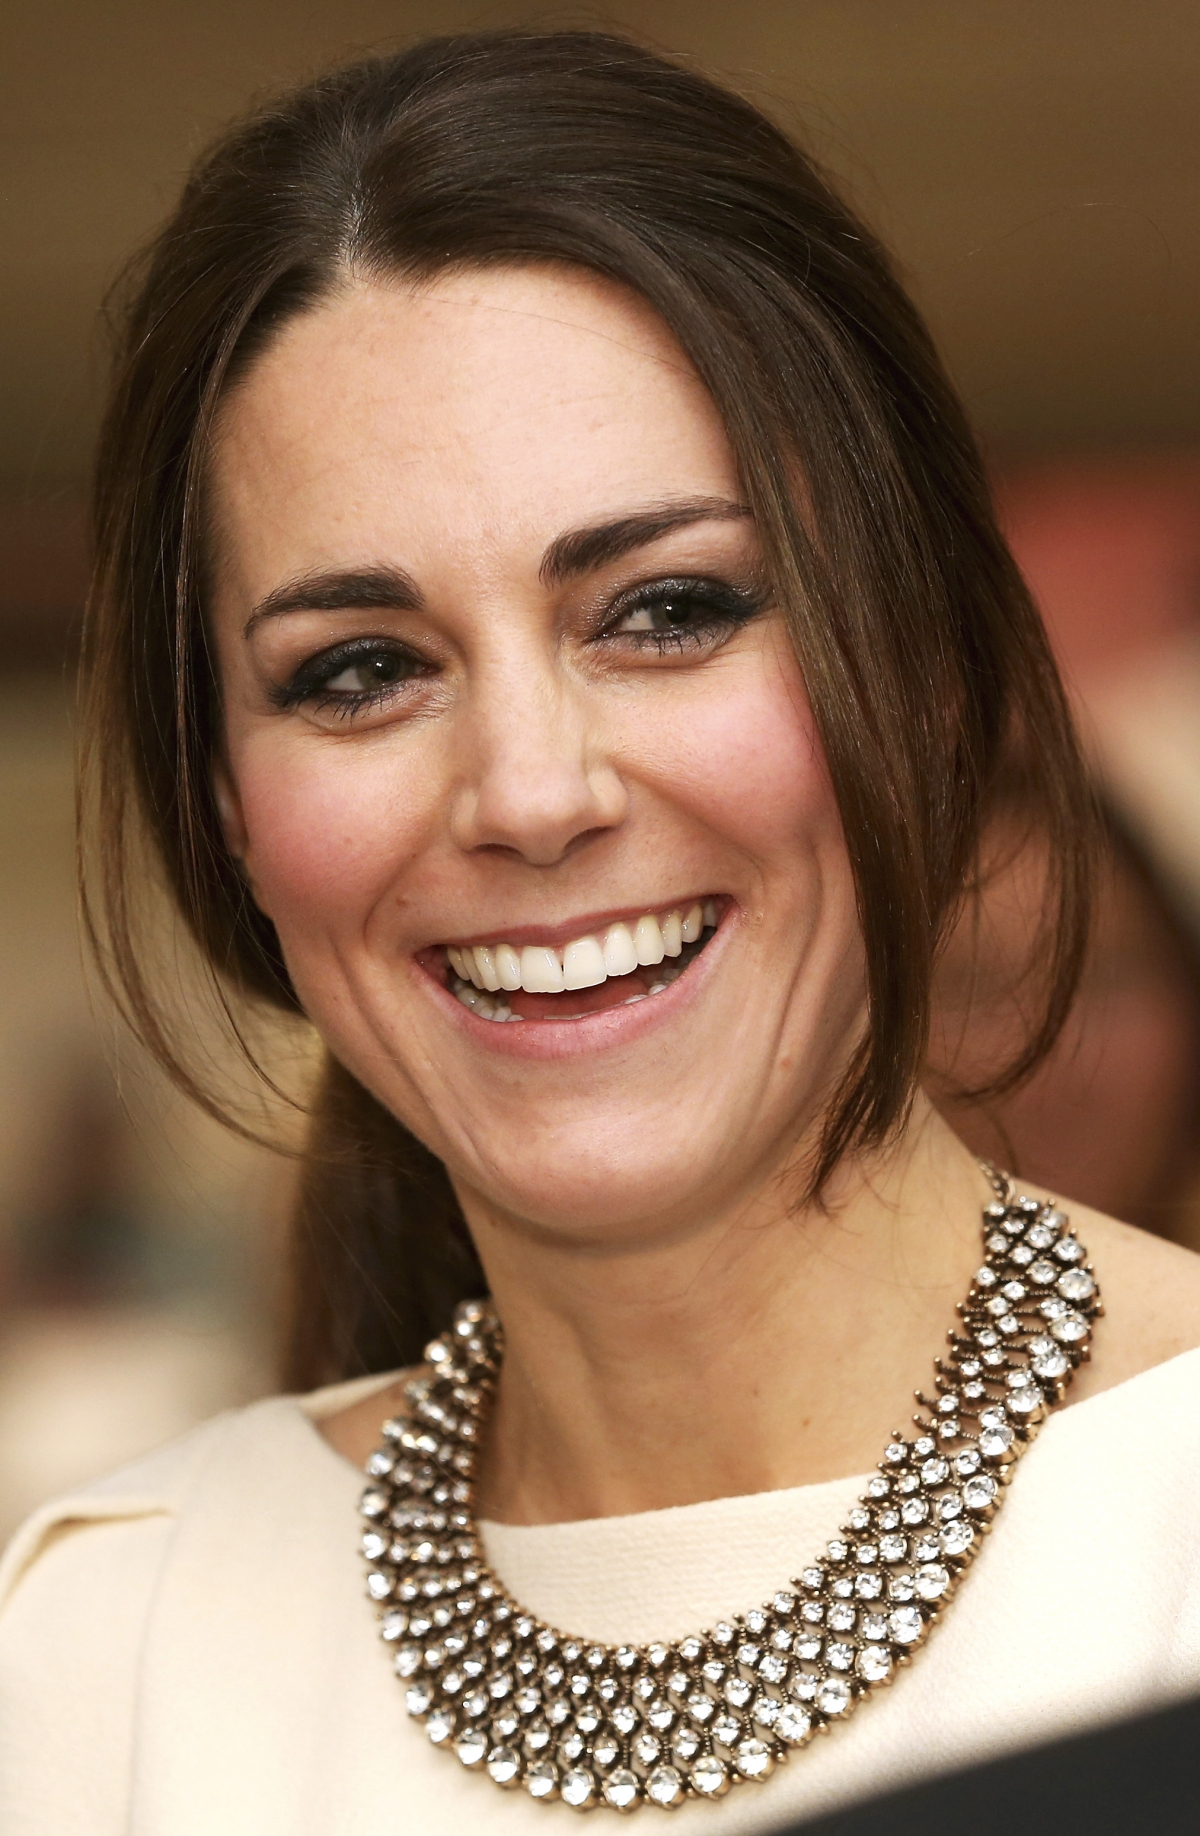 Catherine, the Duchess of Cambridge at the Royal Premiere of